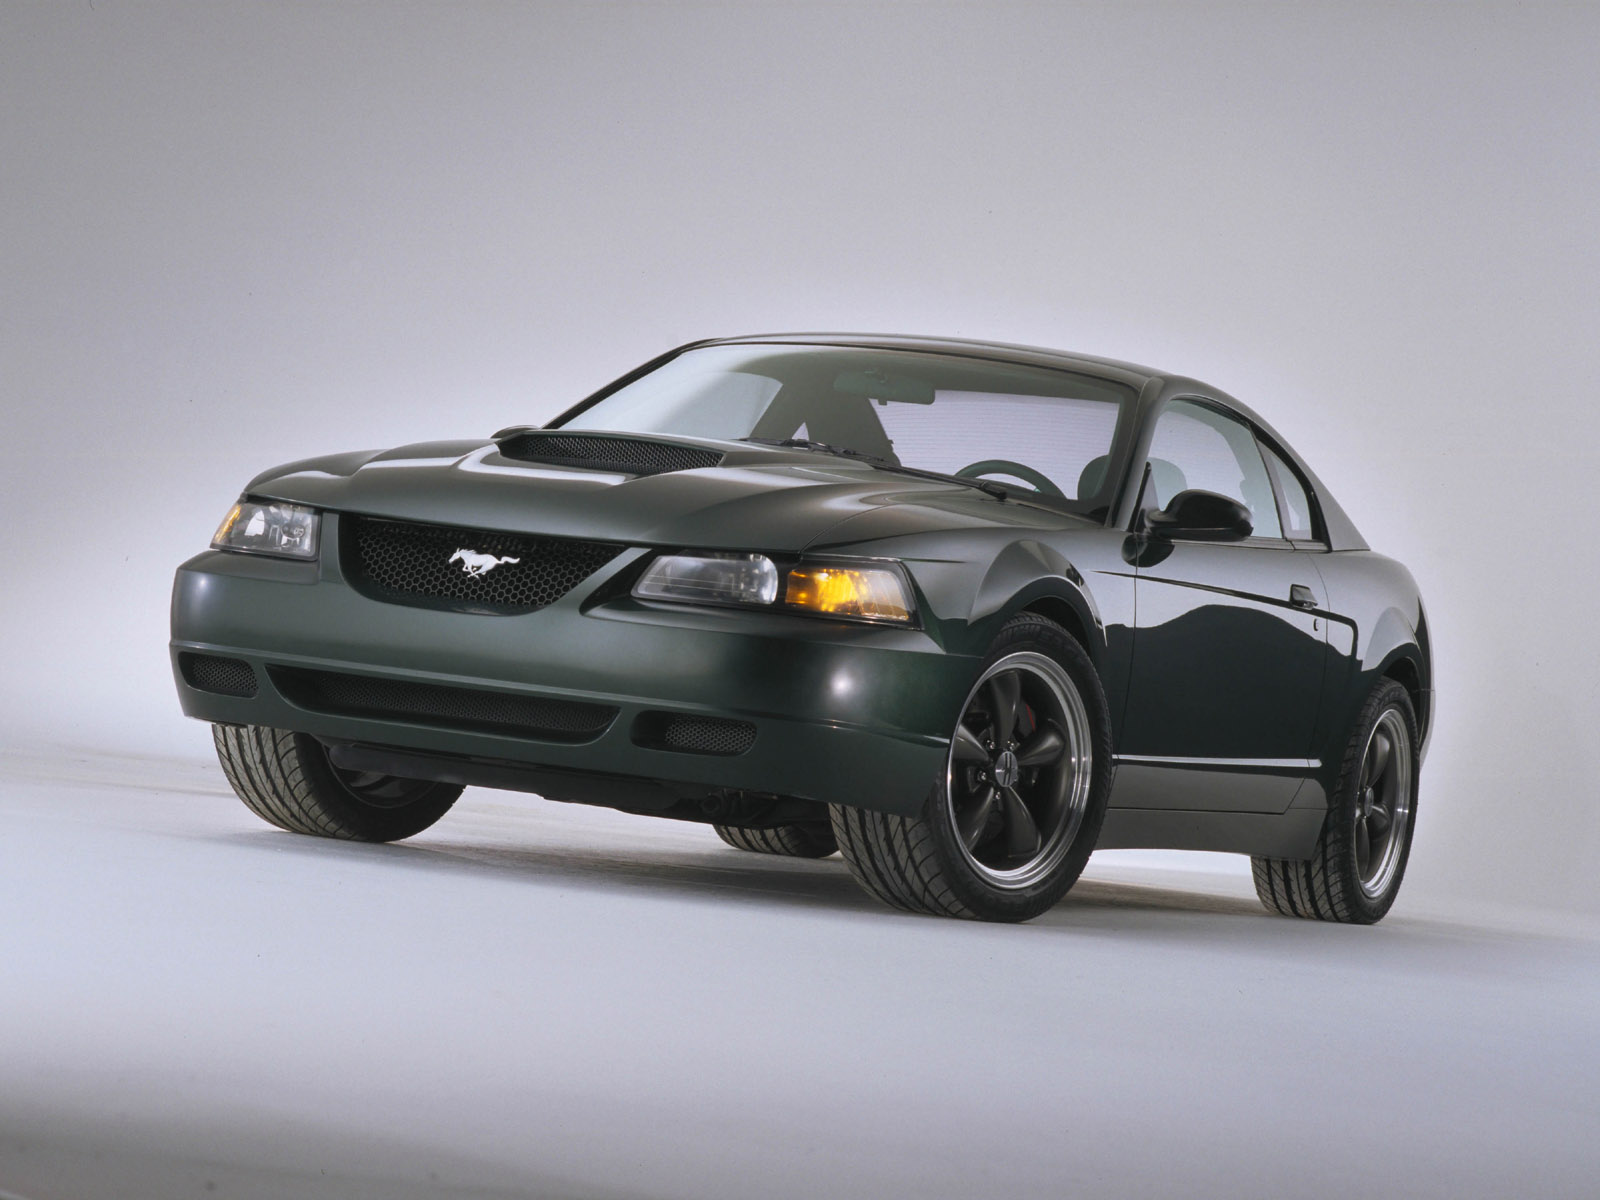 Rmfordauction additionally Ford Explorer Ex Concept M moreover Bullitt Mustang Gt Concept likewise Ford Explorer Sportsman Dv Rmm furthermore D How Change My Ford Touch Wallpaper Mb Ea. on ford explorer sportsman concept